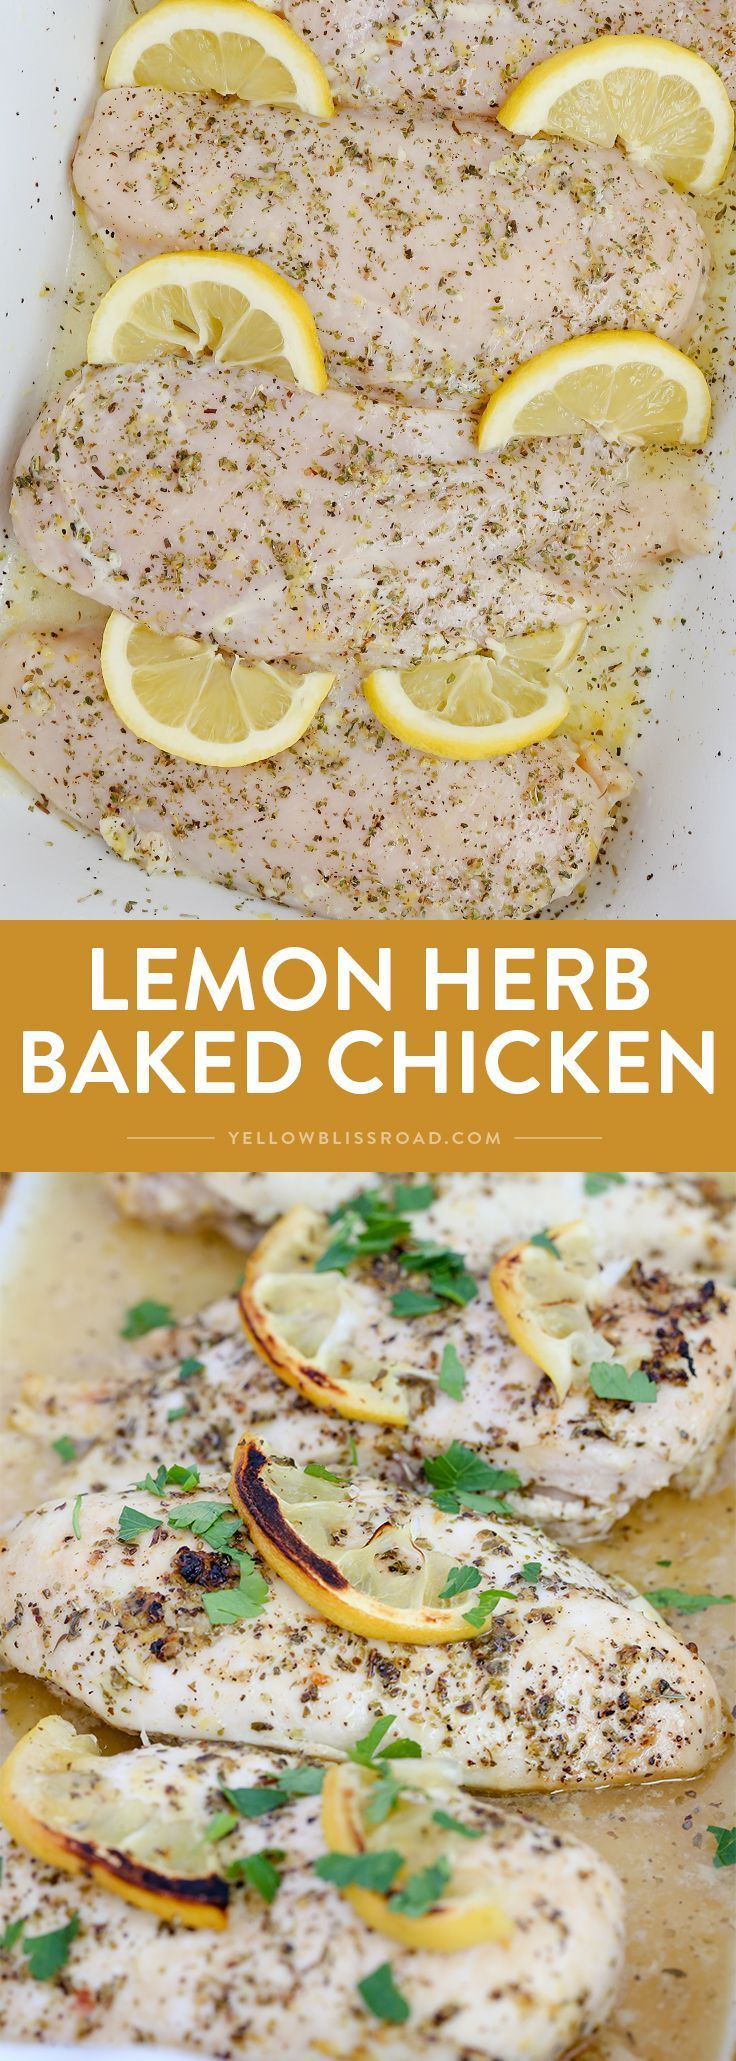 Baked Lemon Chicken is sure to be a new weeknight dinner staple. The most tender and juicy chicken ever, and so easy and full of flavor!